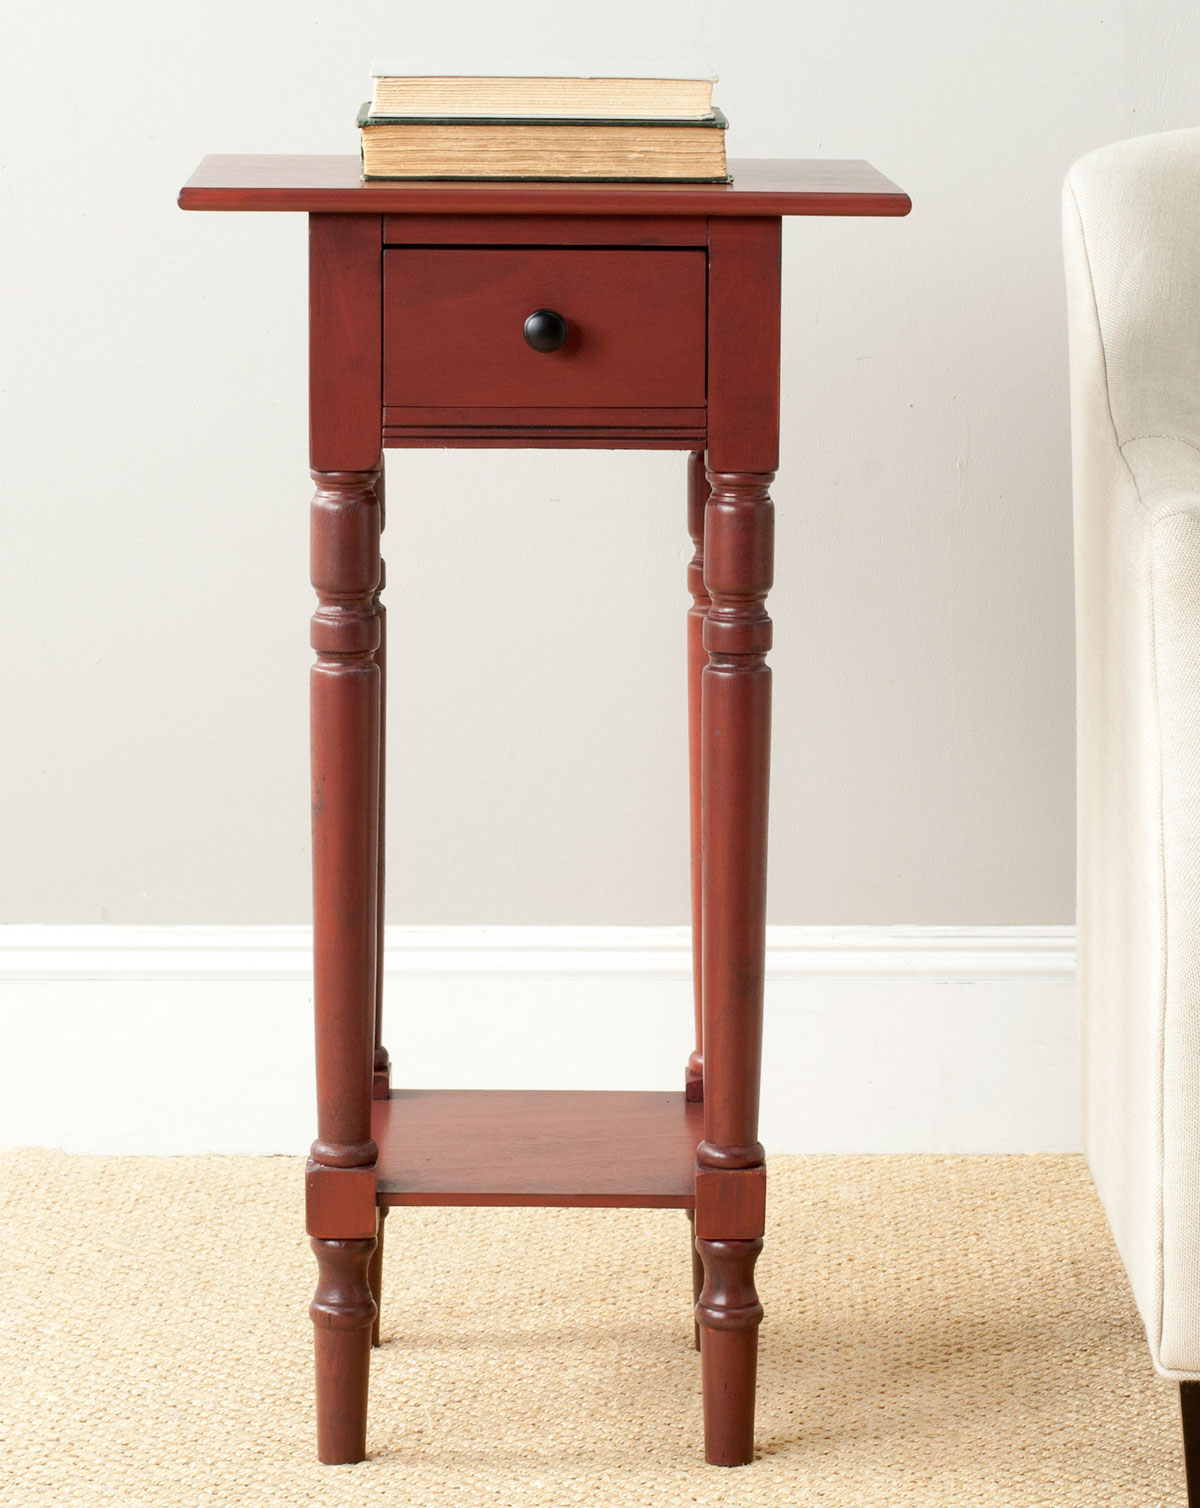 accent tables furniture safavieh room essentials storage table large enough hold like glasses reading lamp and books sabrina pine with pretty red finish doesn need much space